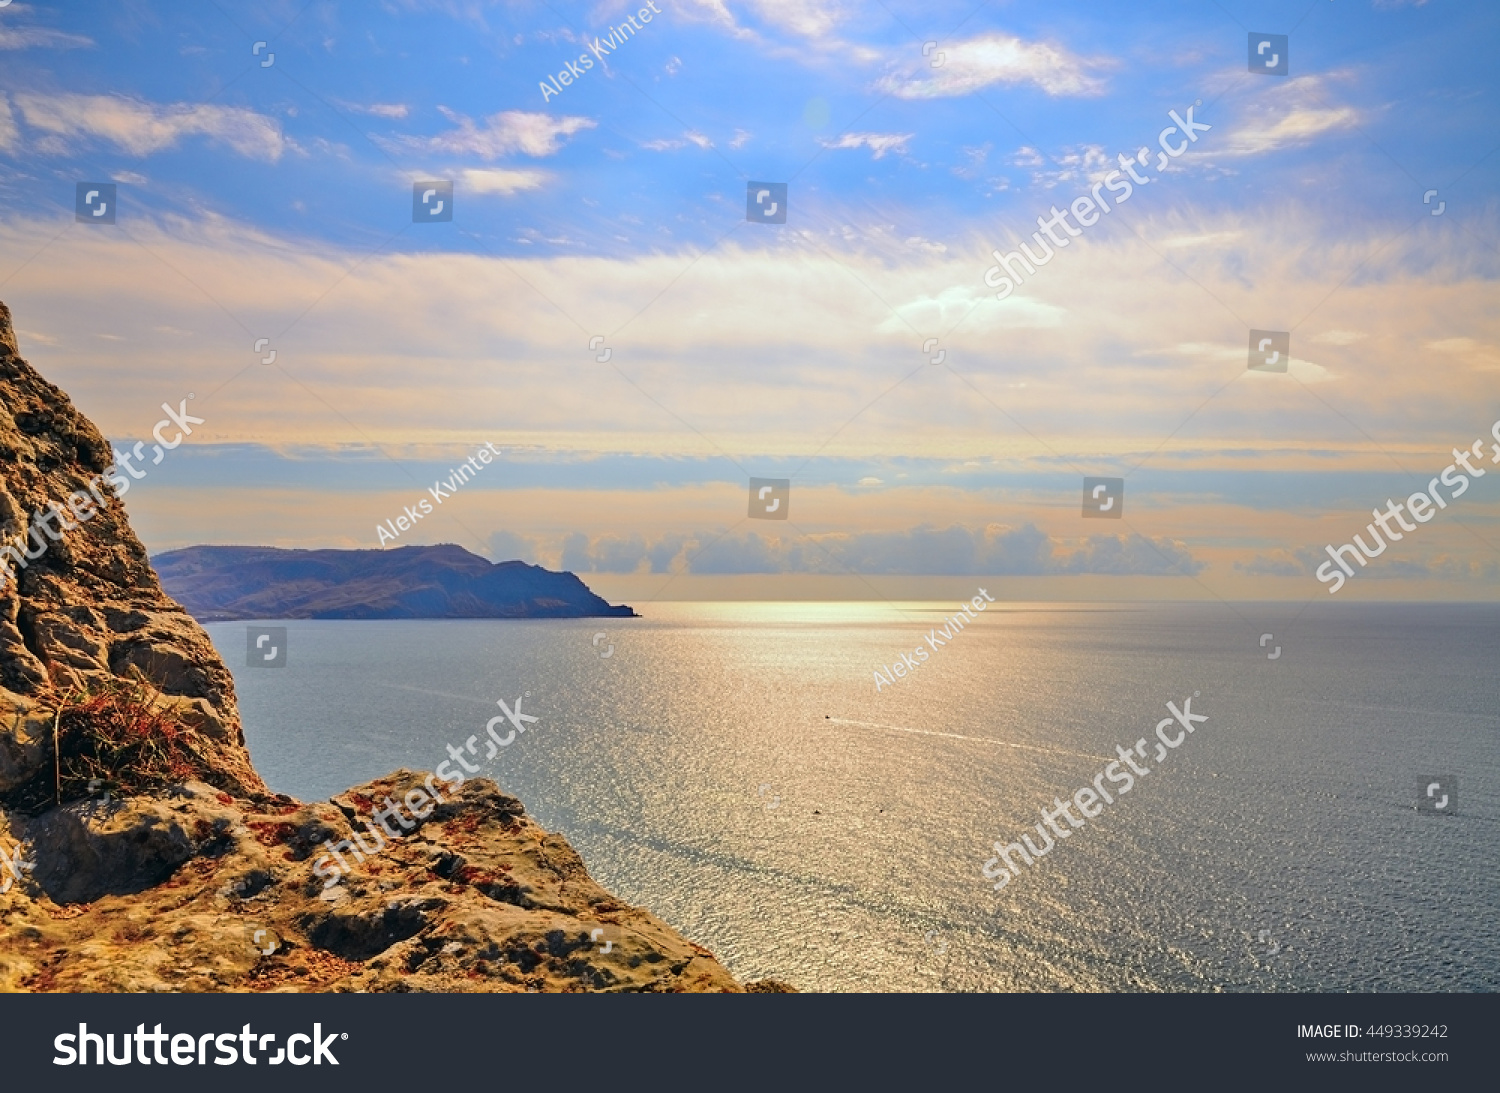 stock-photo-wide-solar-path-on-the-surfa